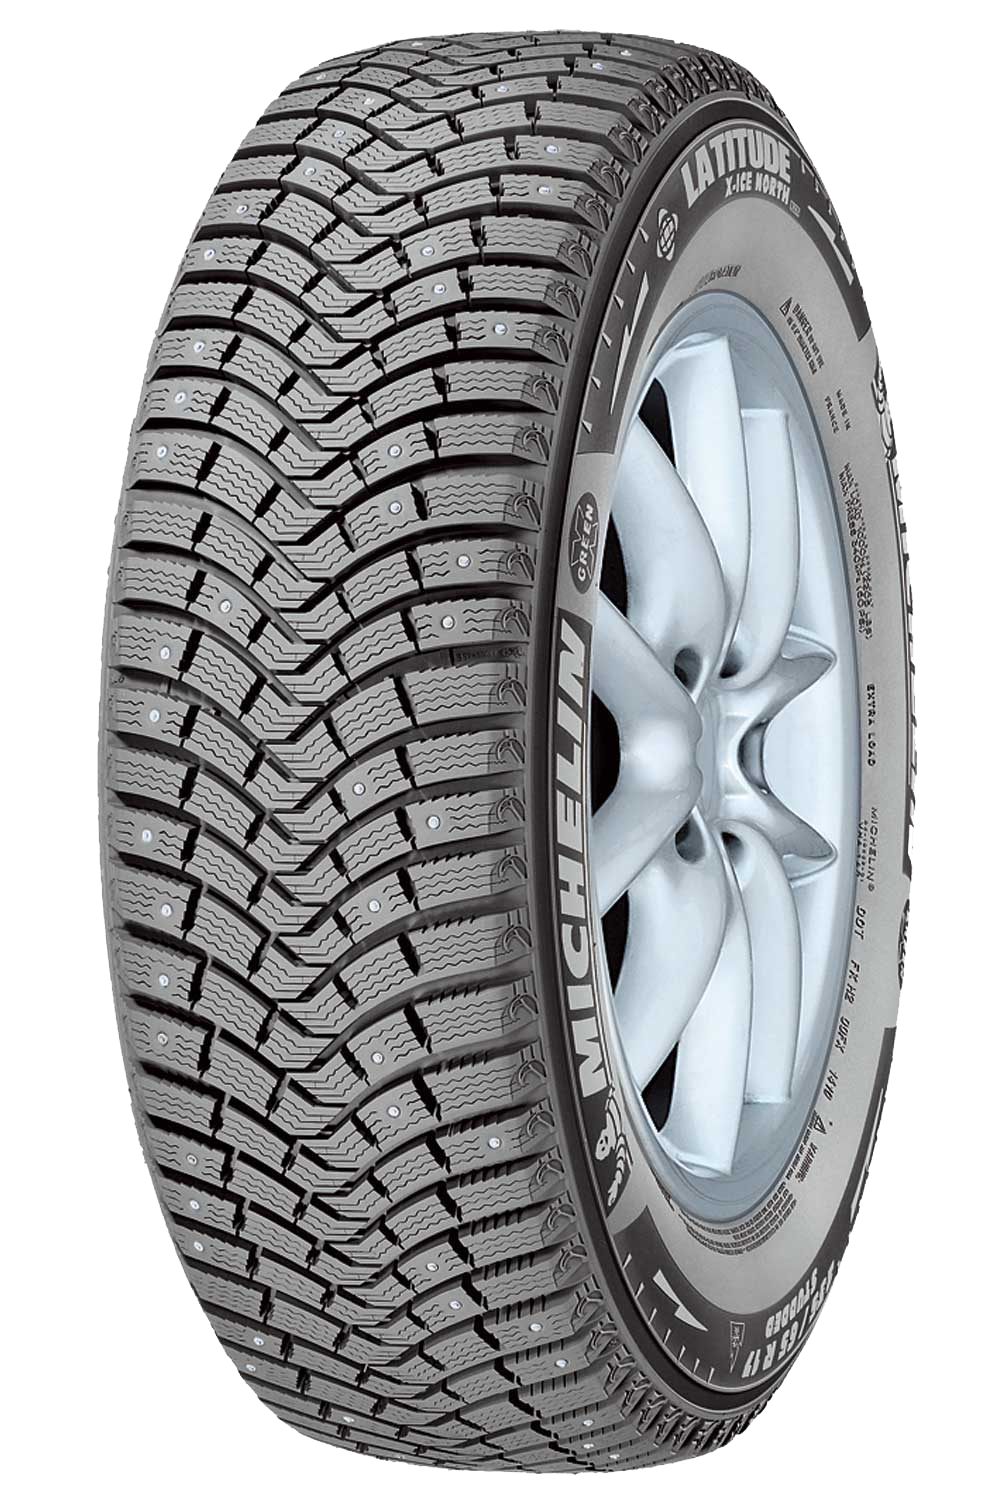 Зимняя шипованная шина Michelin Latitude X-Ice North XIN2 plus 245/70 R17 110T